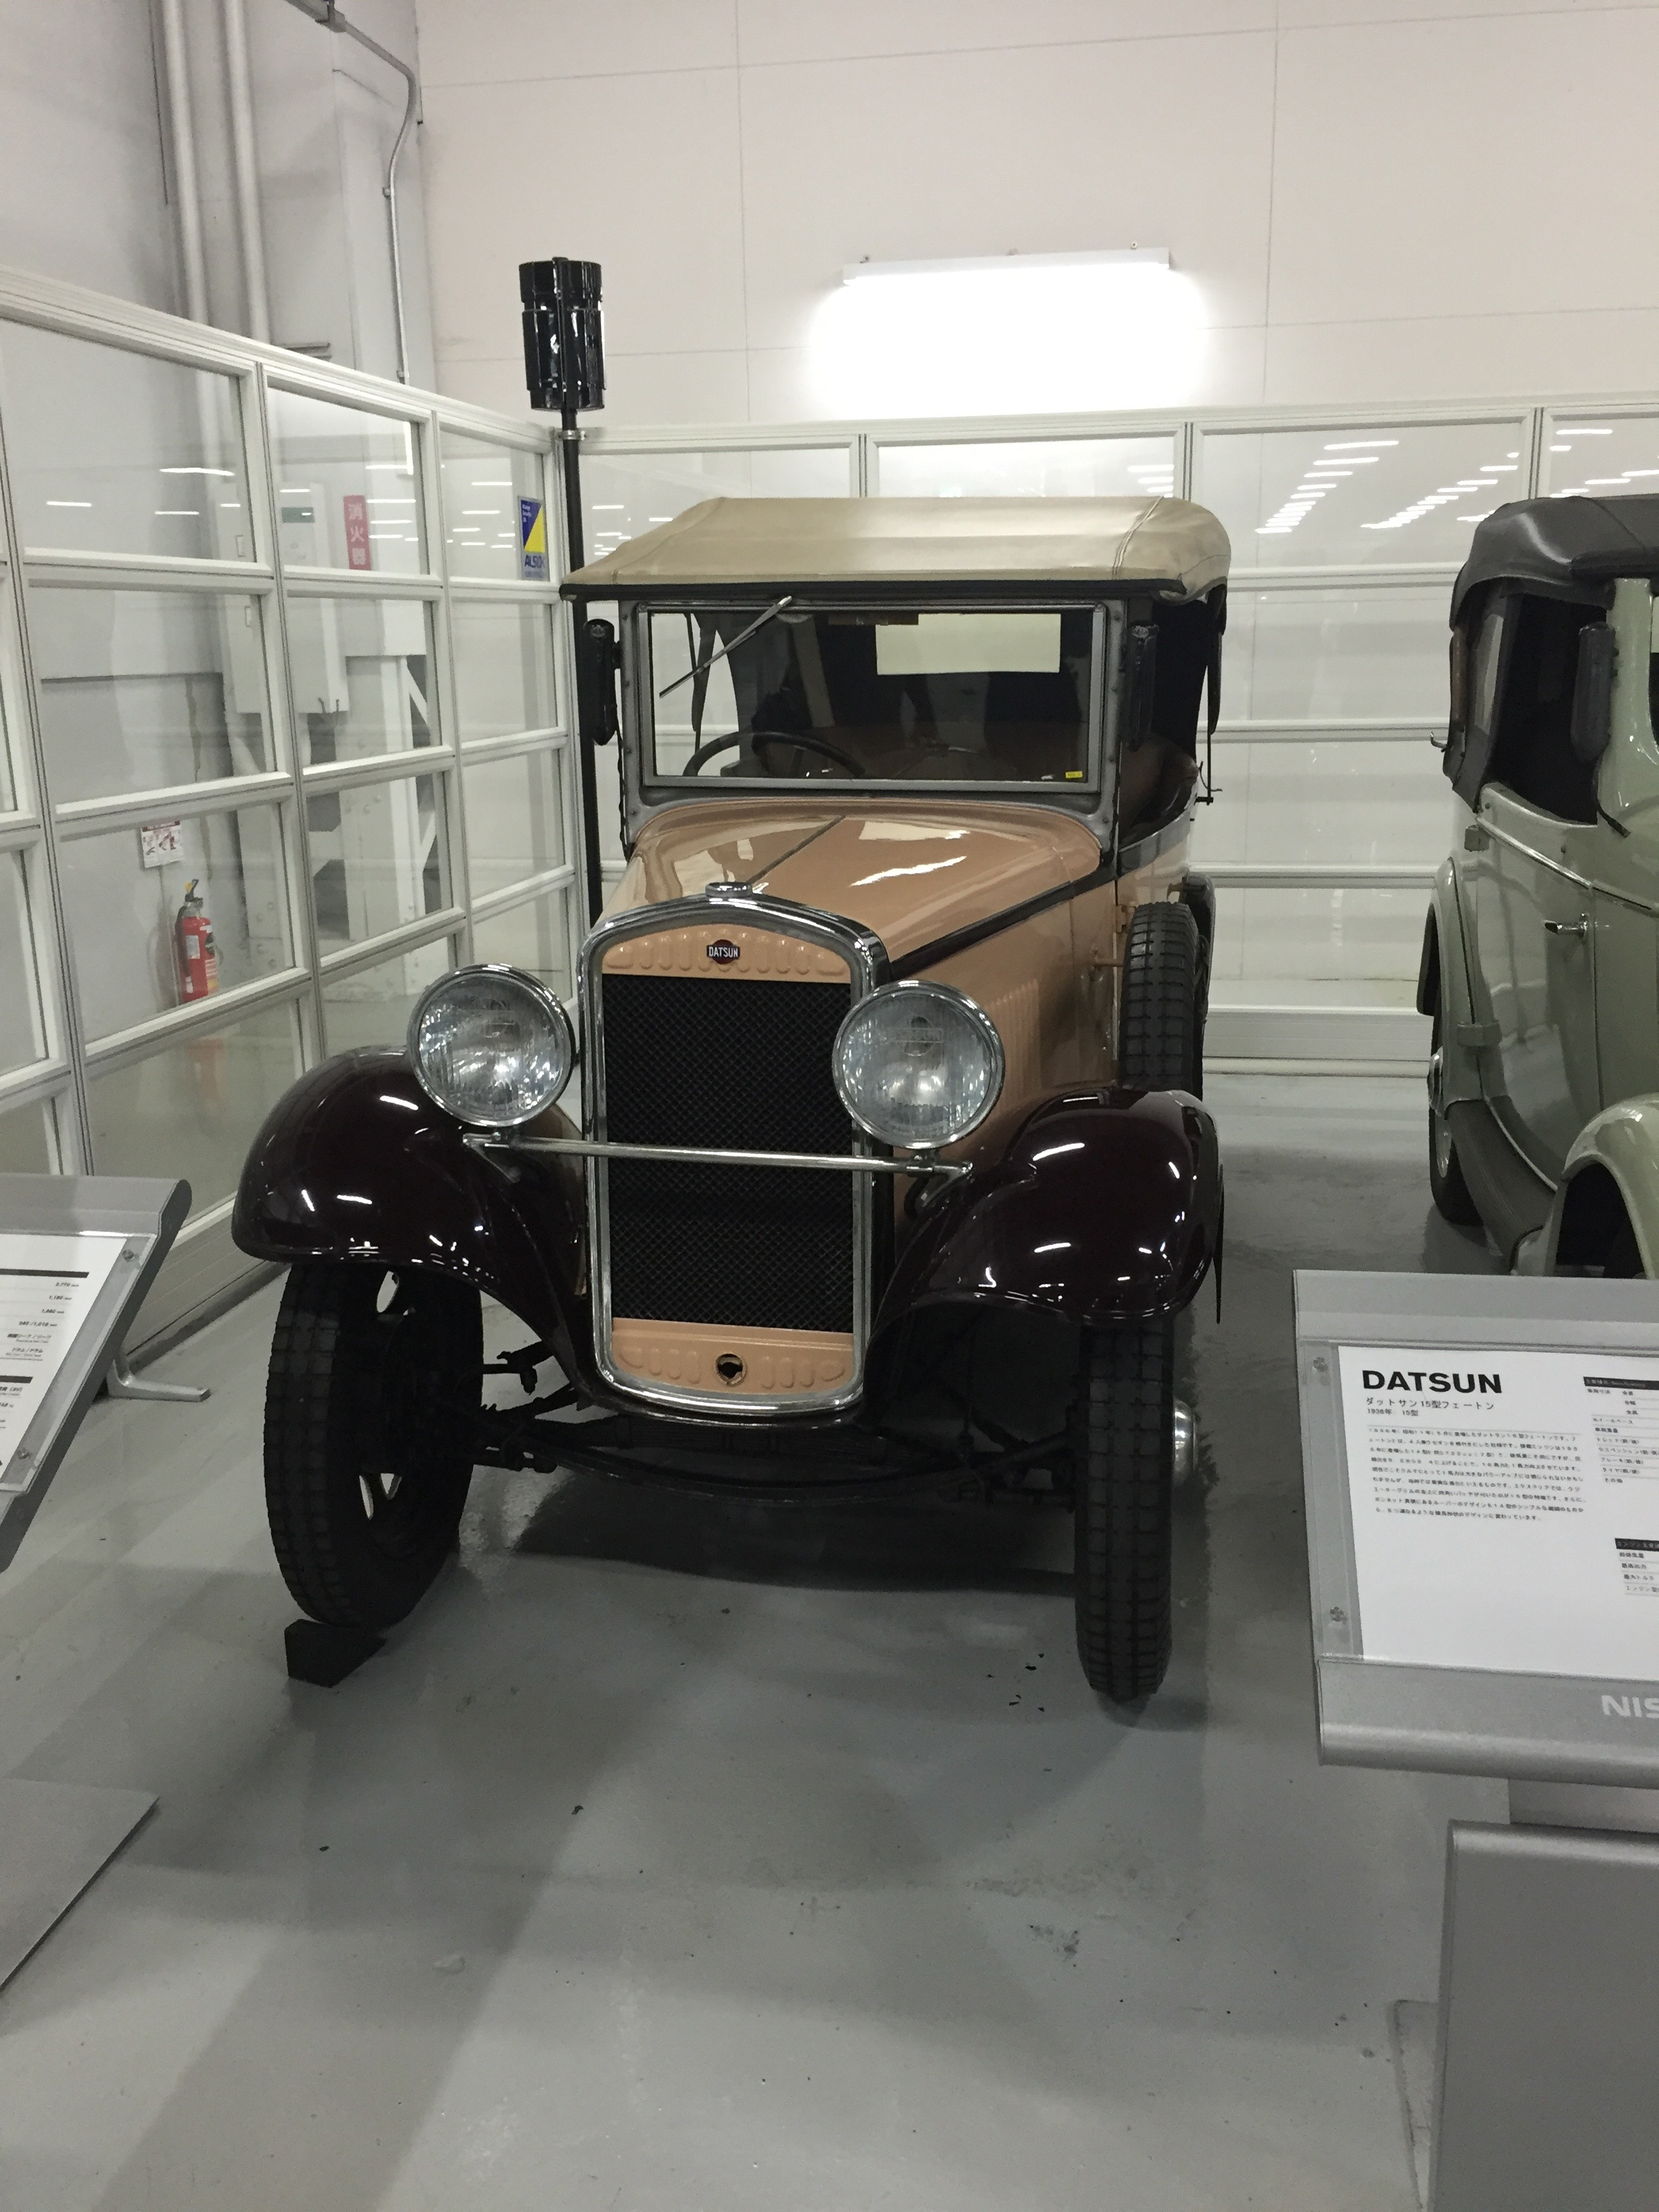 1933 Datsun 12 Phaeton (eat your heart out, Volkswagen)